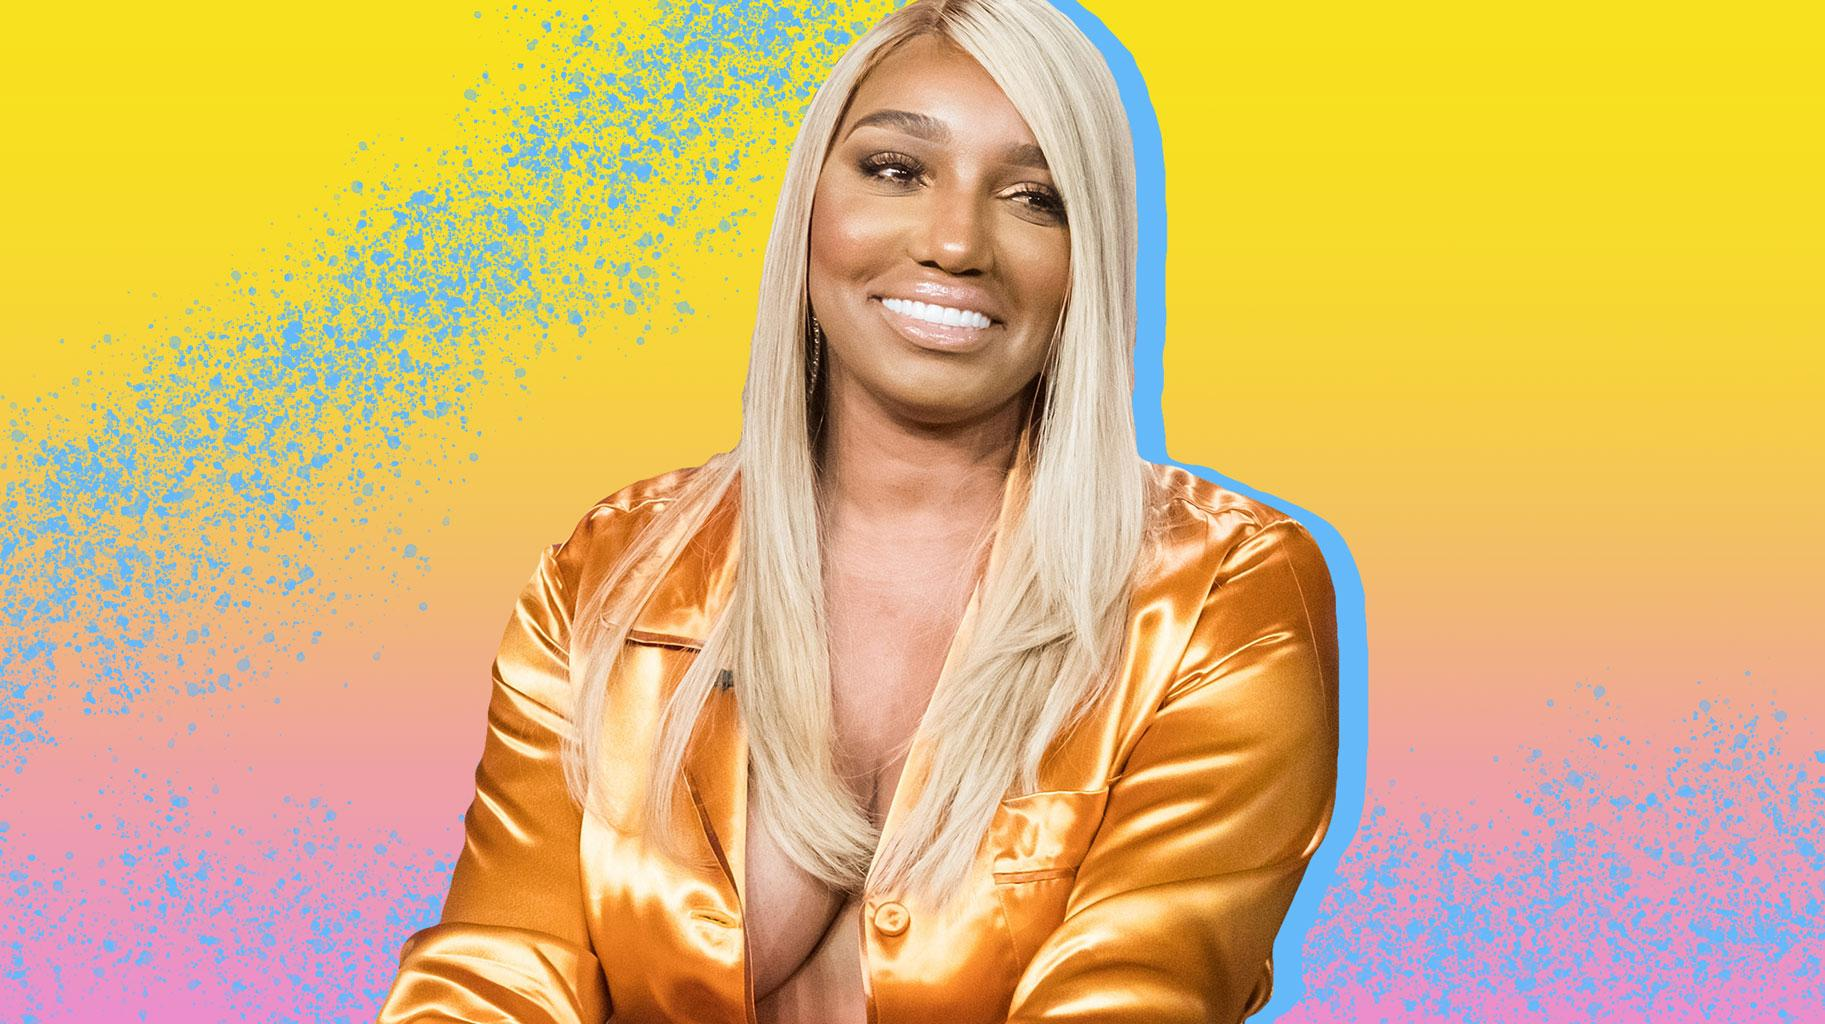 NeNe Leakes Shares This Dramatic Video For Flashback Friday To Prove Her Point